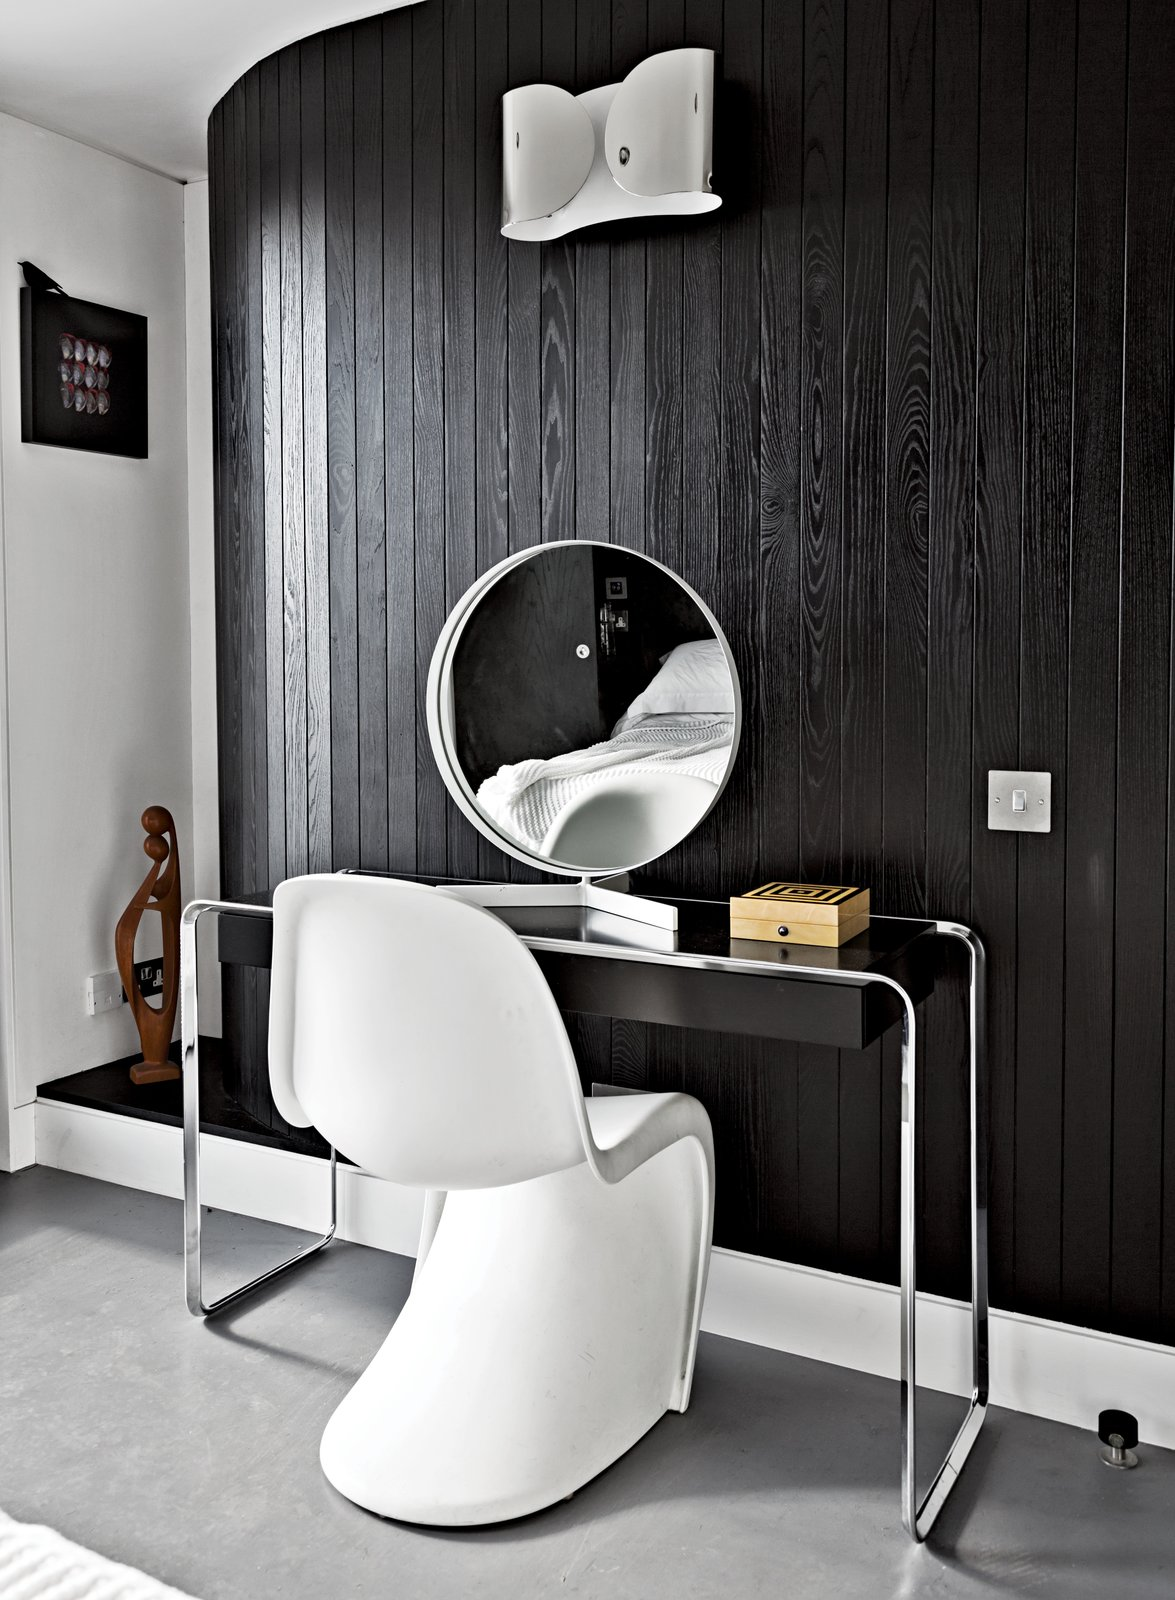 "Near the room's curving wall, a Verner Panton chair joins a K2 B console table by Tecta, topped by a vintage mirror by Robert Welch. The wall light is from Flos. ""If I had more space, I'd just fill it with more stuff,"" says Pearce. Tagged: Bedroom, Wall Lighting, and Concrete Floor.  Photo 3 of 7 in An Elevated Deckhouse in England"